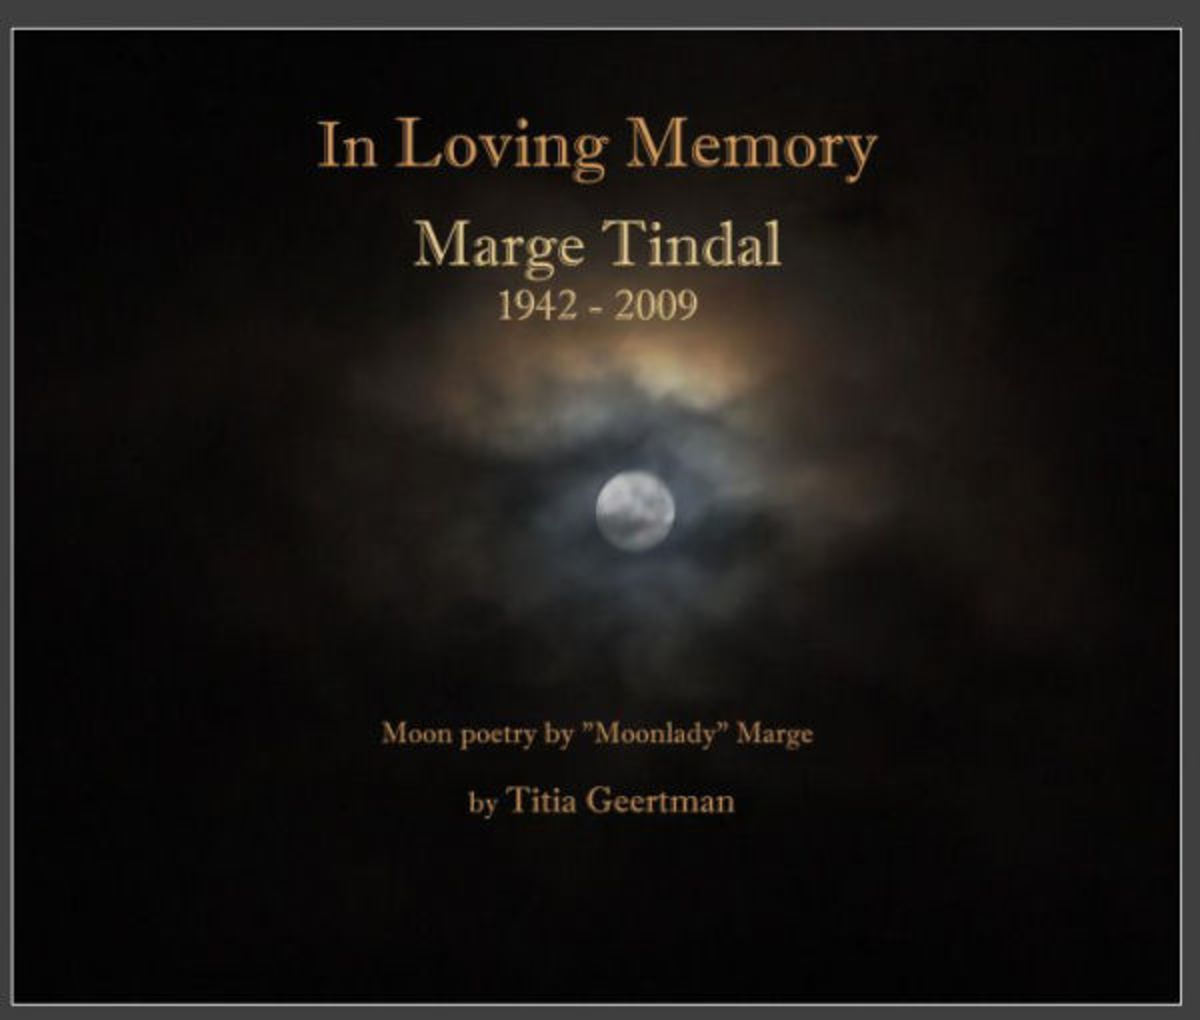 In Loving Memory: Marge Tindal